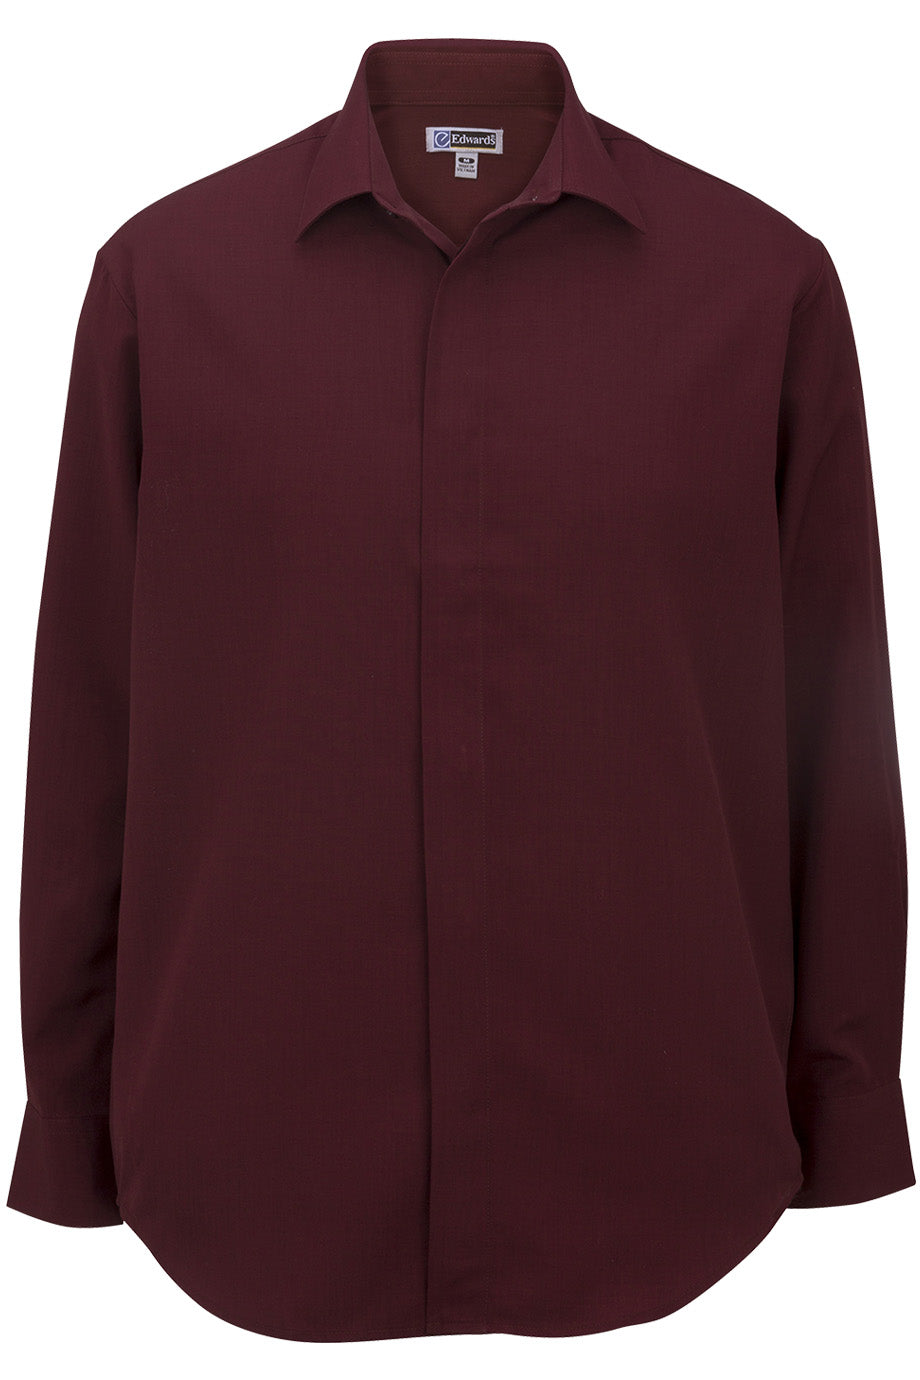 Burgundy 1291 Batiste Fly Shirt